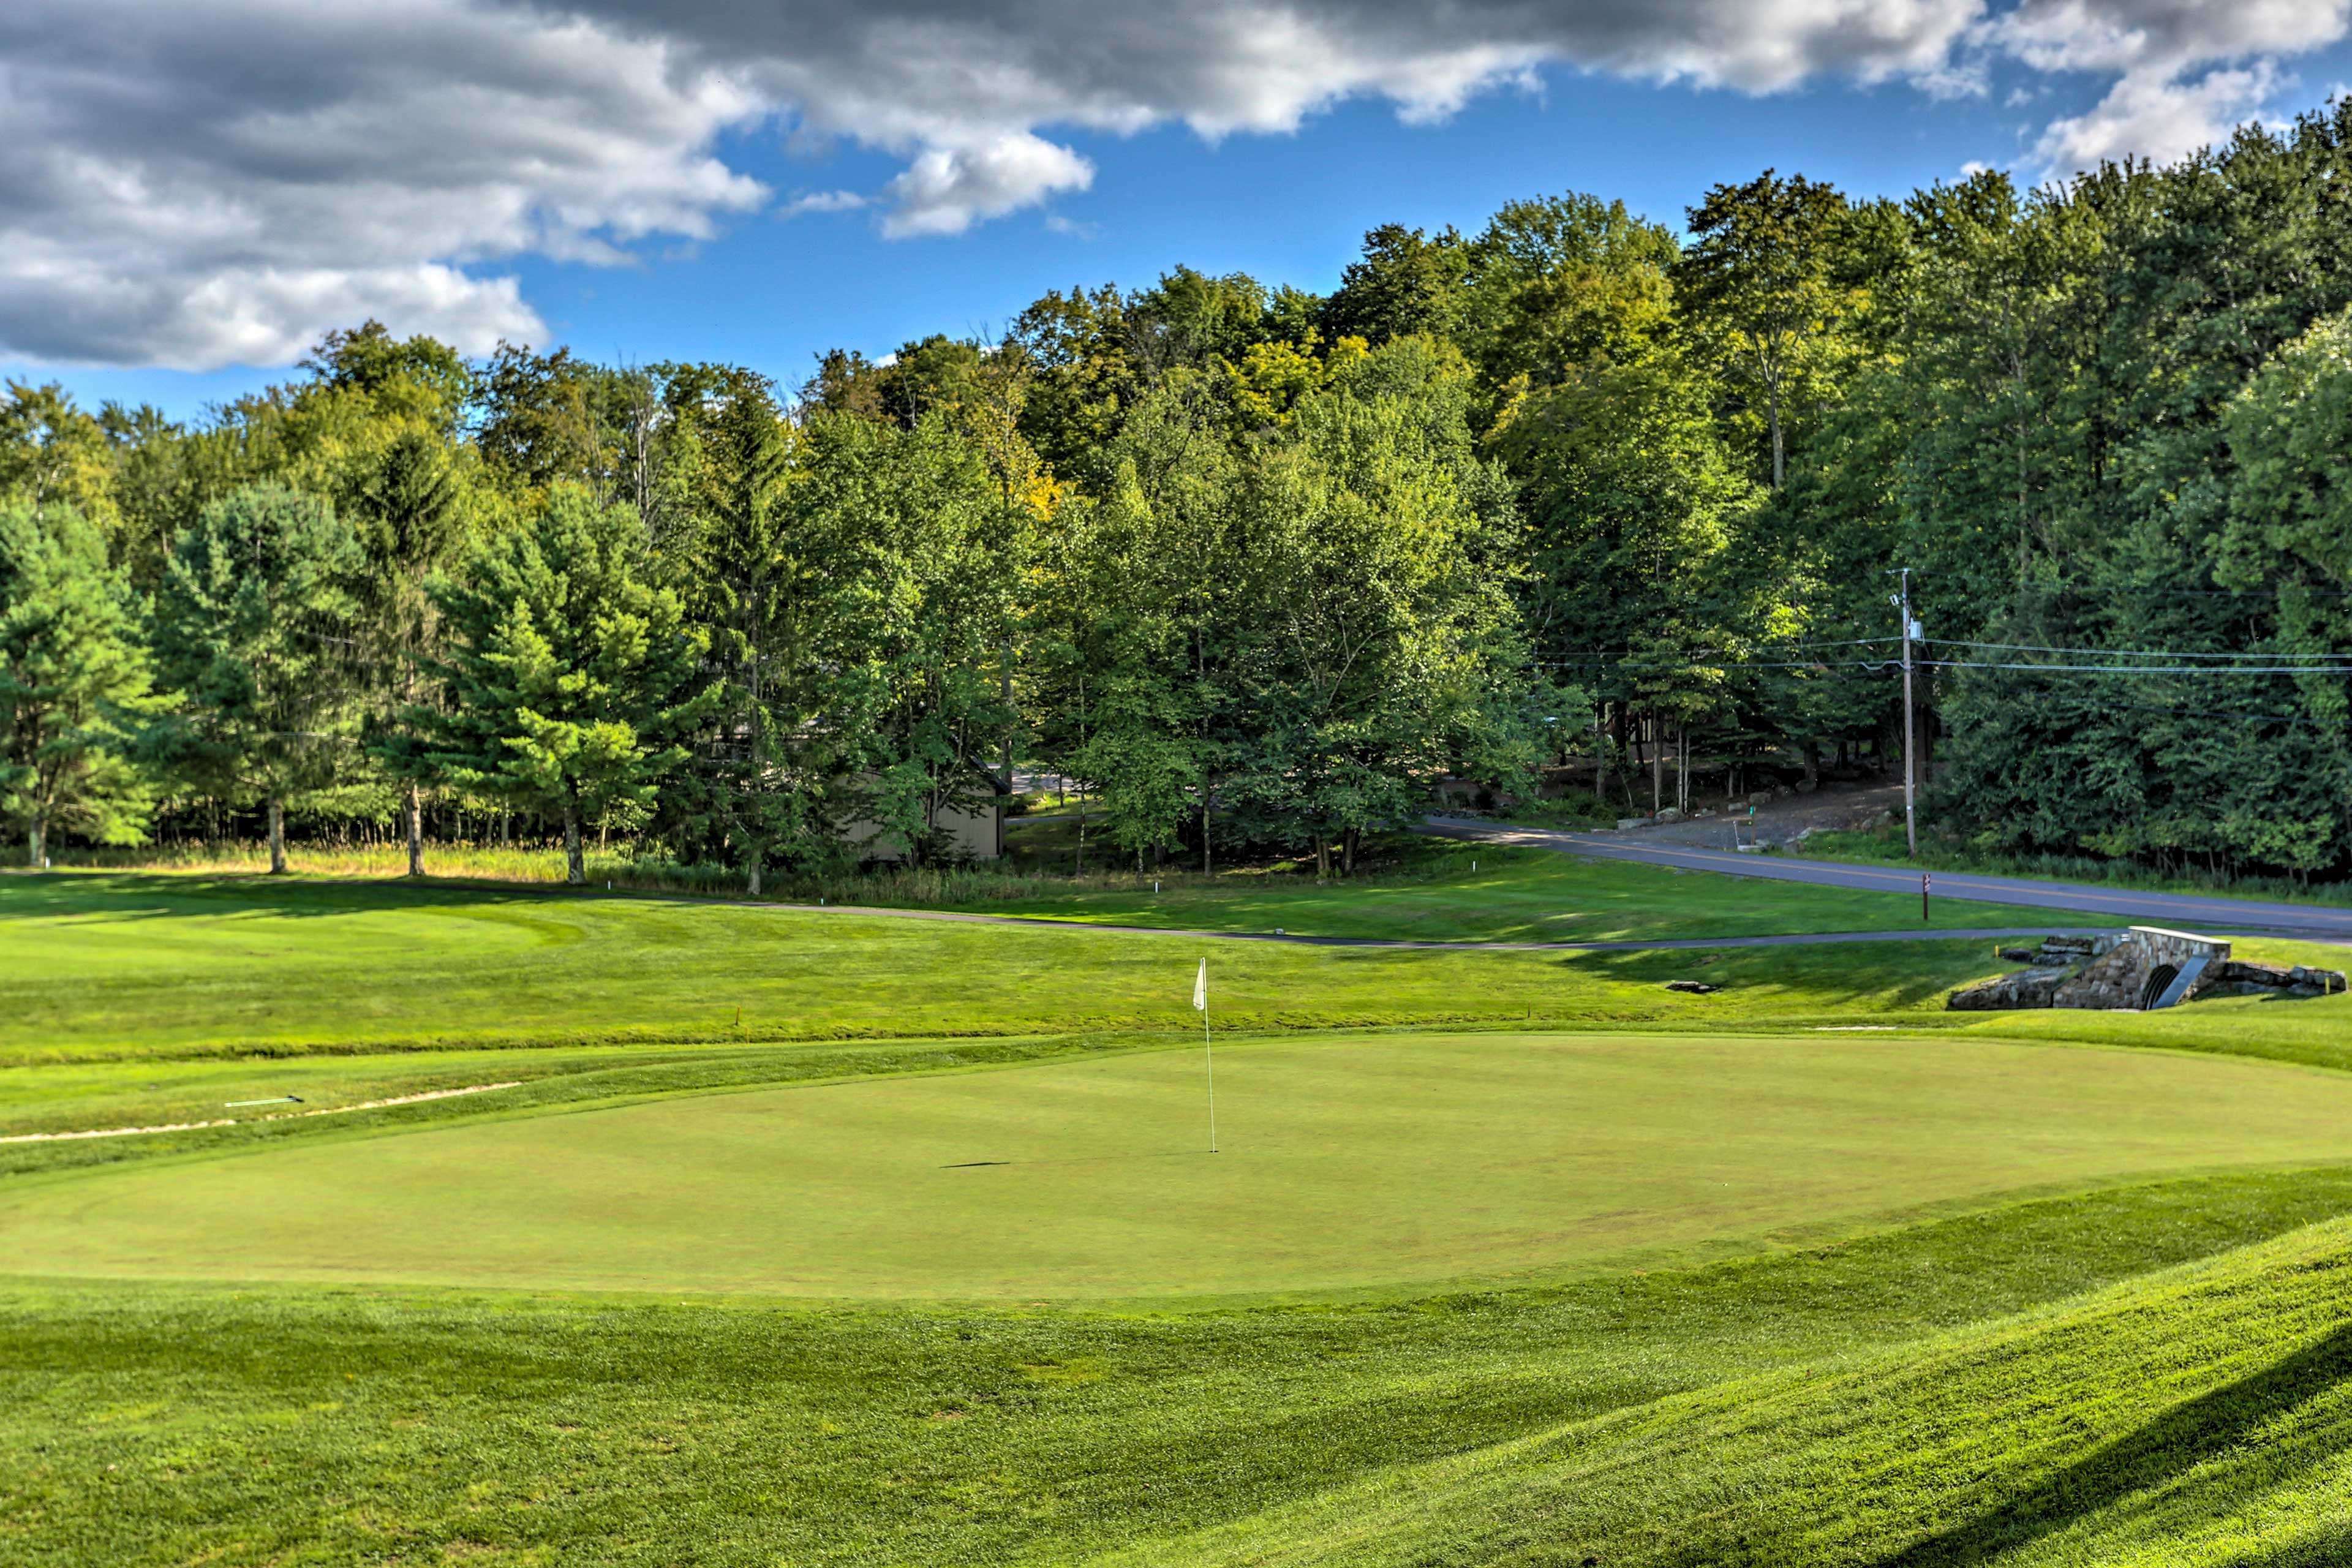 Play a round of golf on The Hideout course located within walking distance.